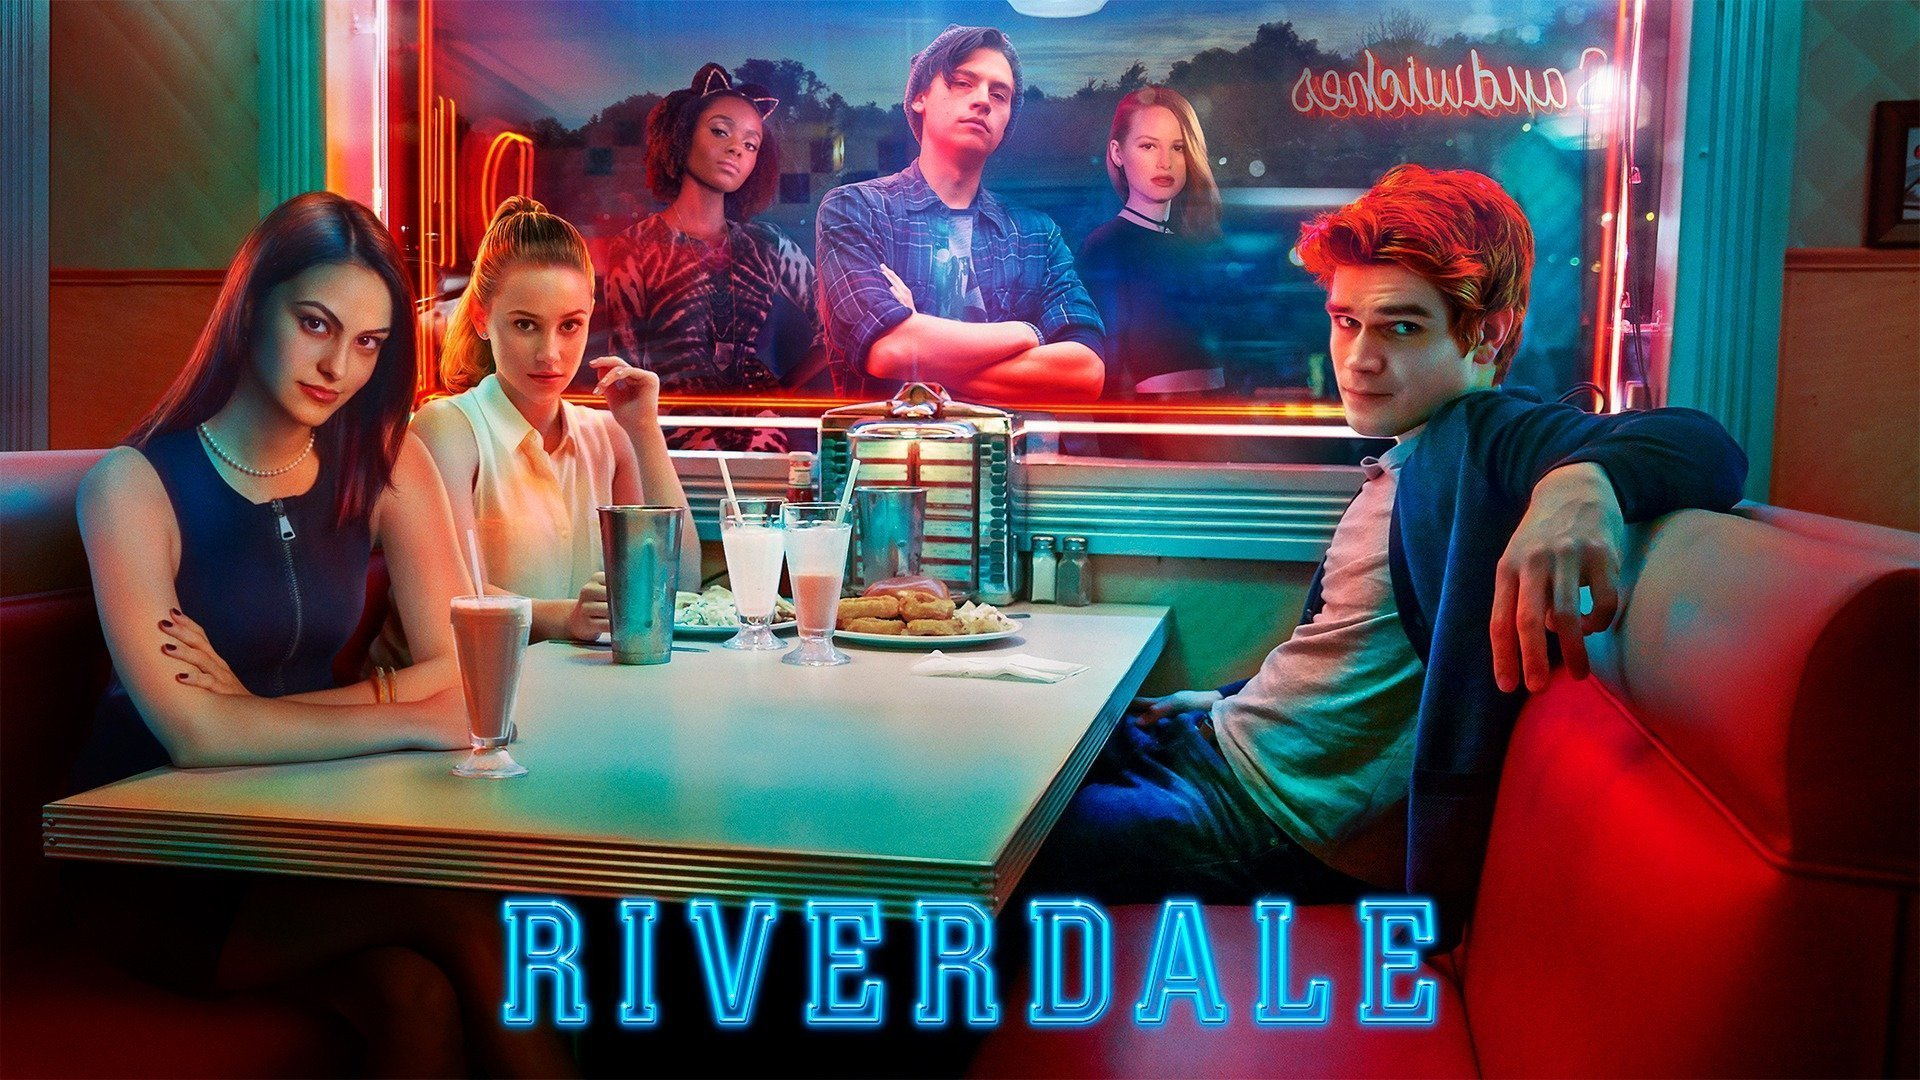 Riverdale tv series hd tv shows 4k wallpapers images - Tv series wallpaper 4k ...